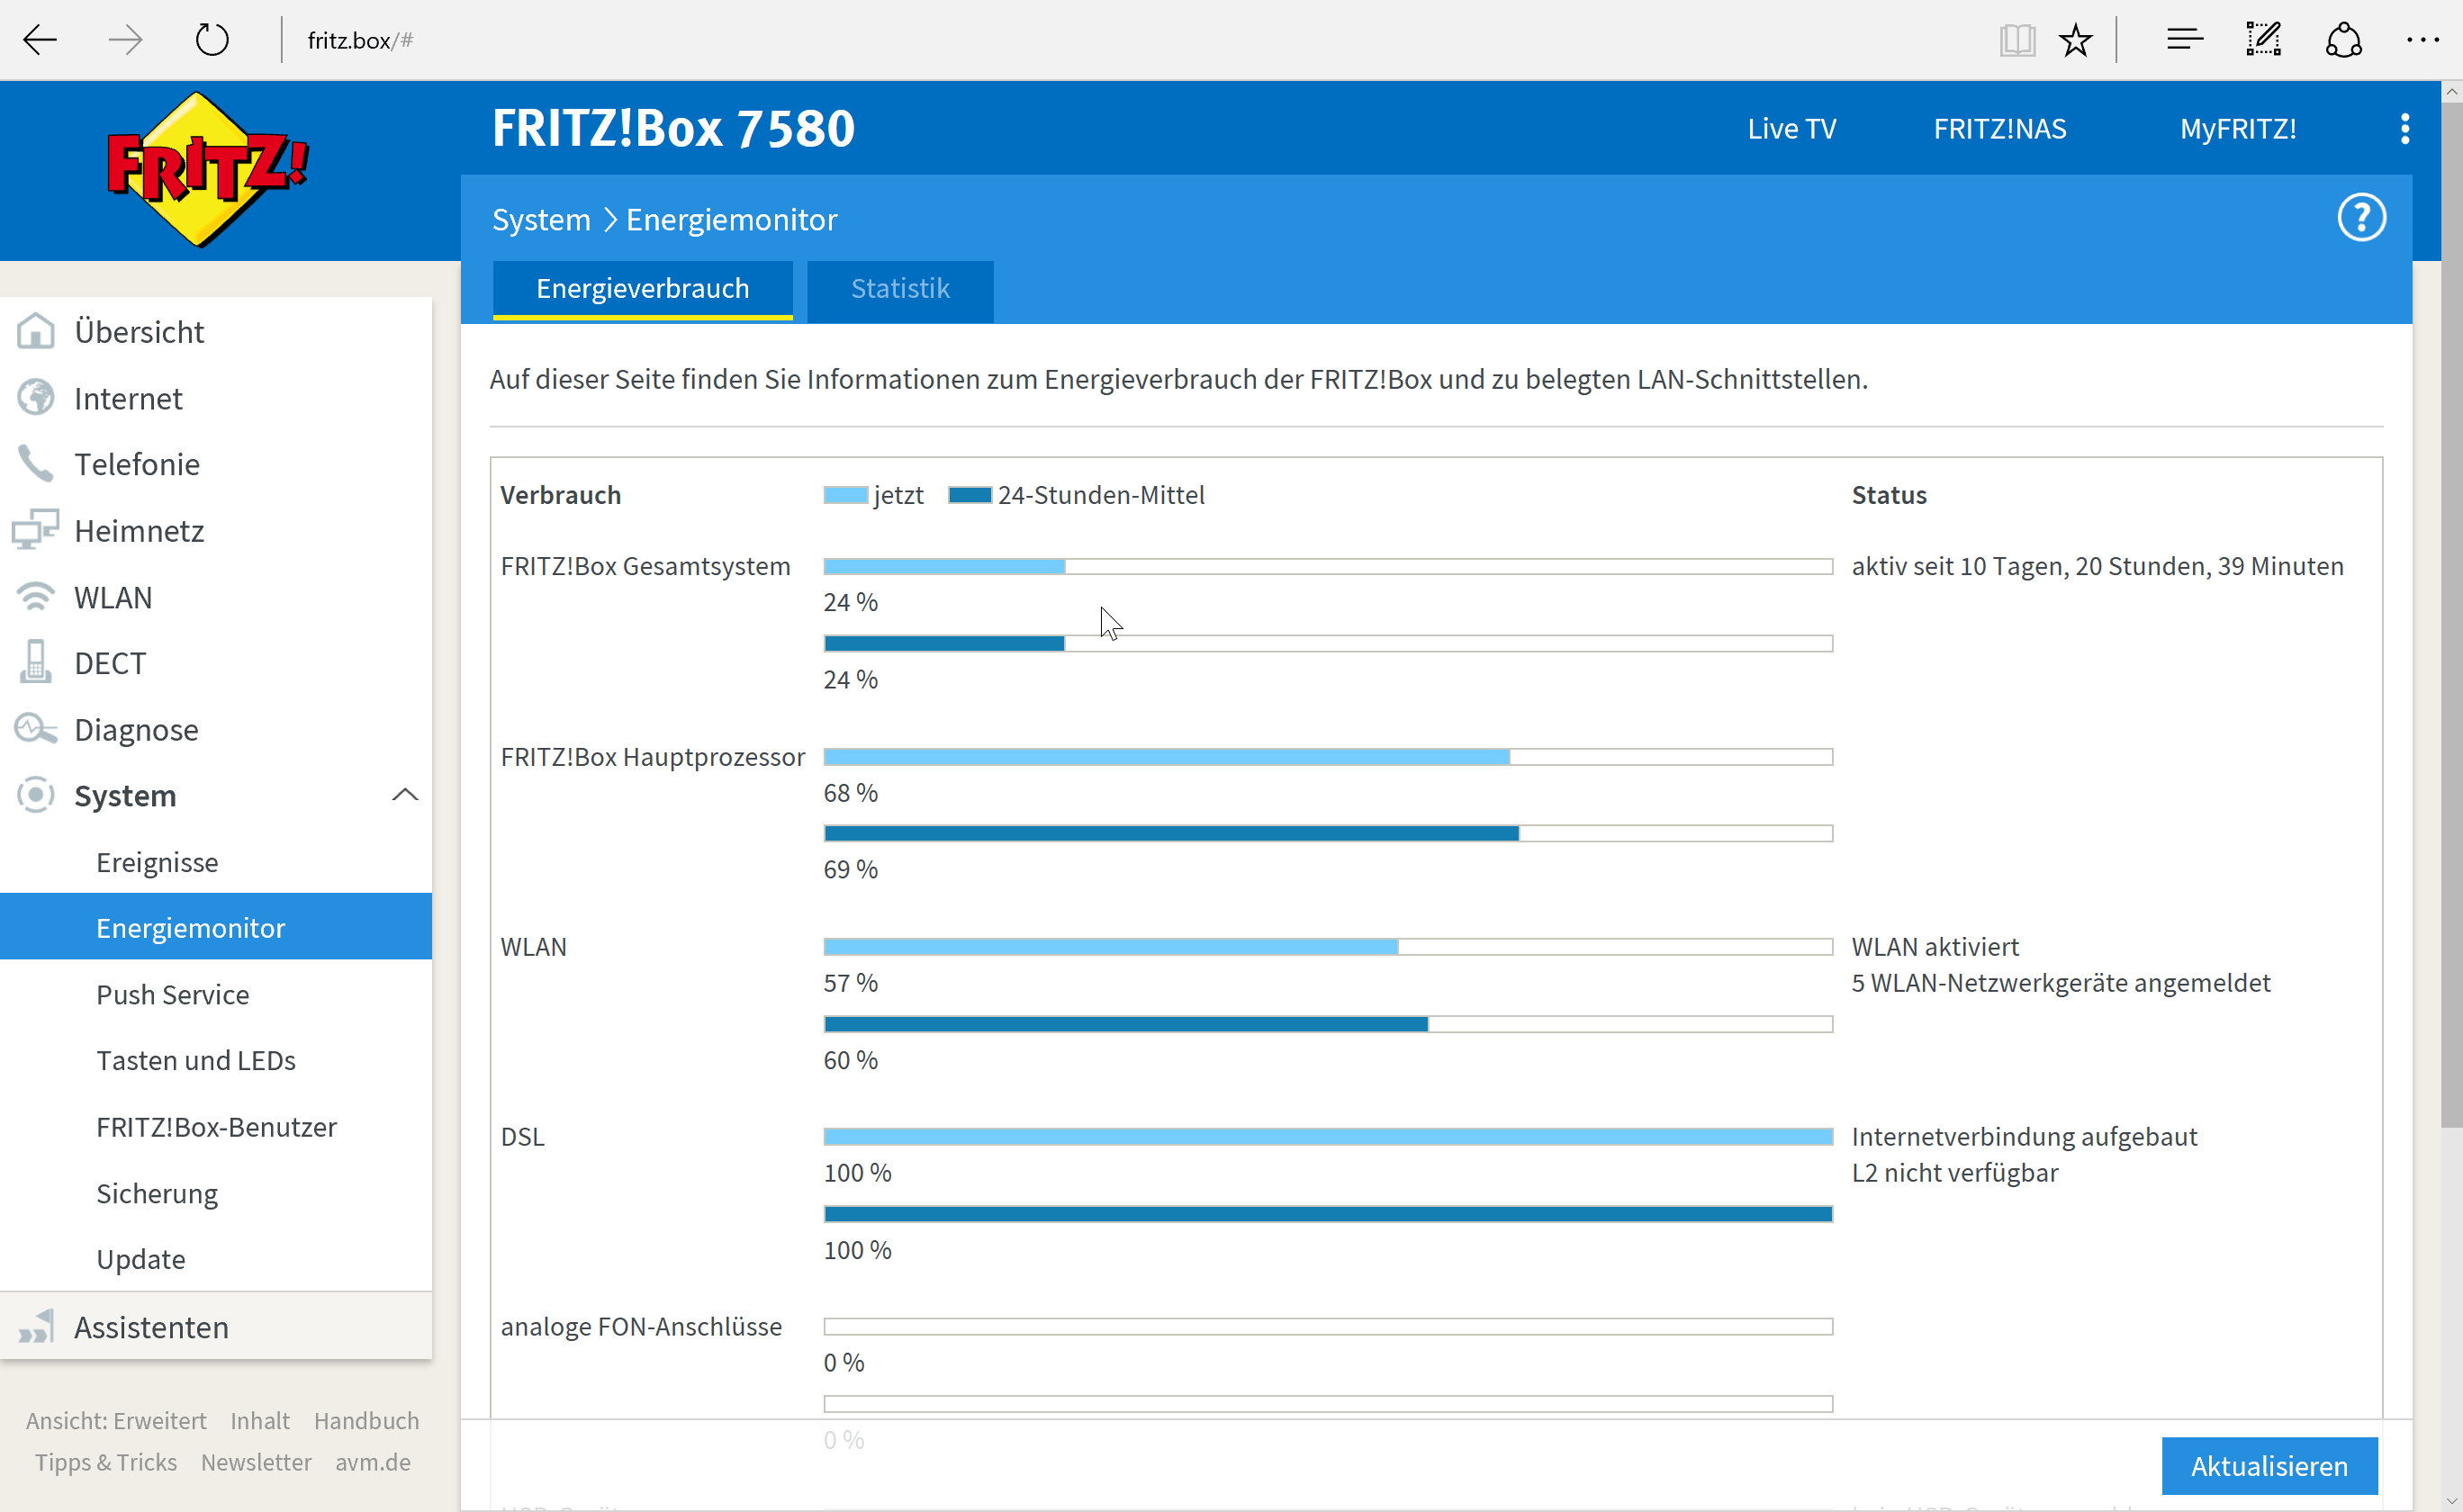 Fritz!Box 7580, Screenshot Energiemonitor